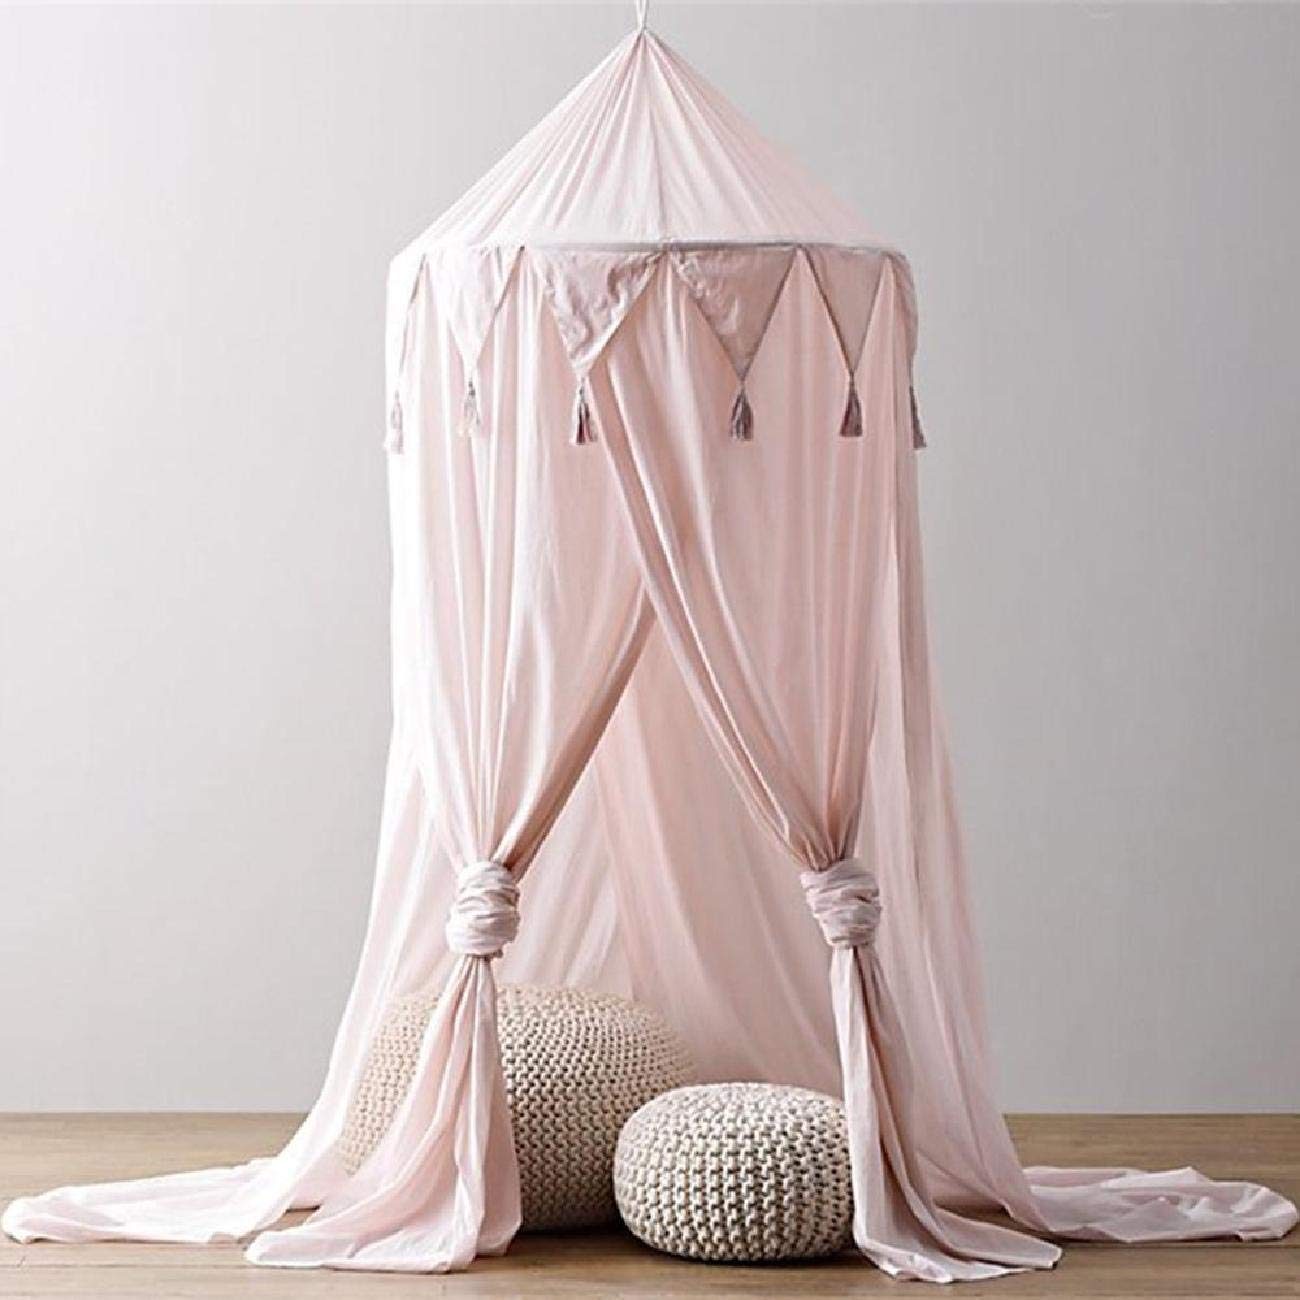 Bed Canopy, Chiffon Reading Nook Tent Dome Triangle Tassel Net with Assembly Tools Bedroom Decoration Indoor Game House for Kids (Pink)